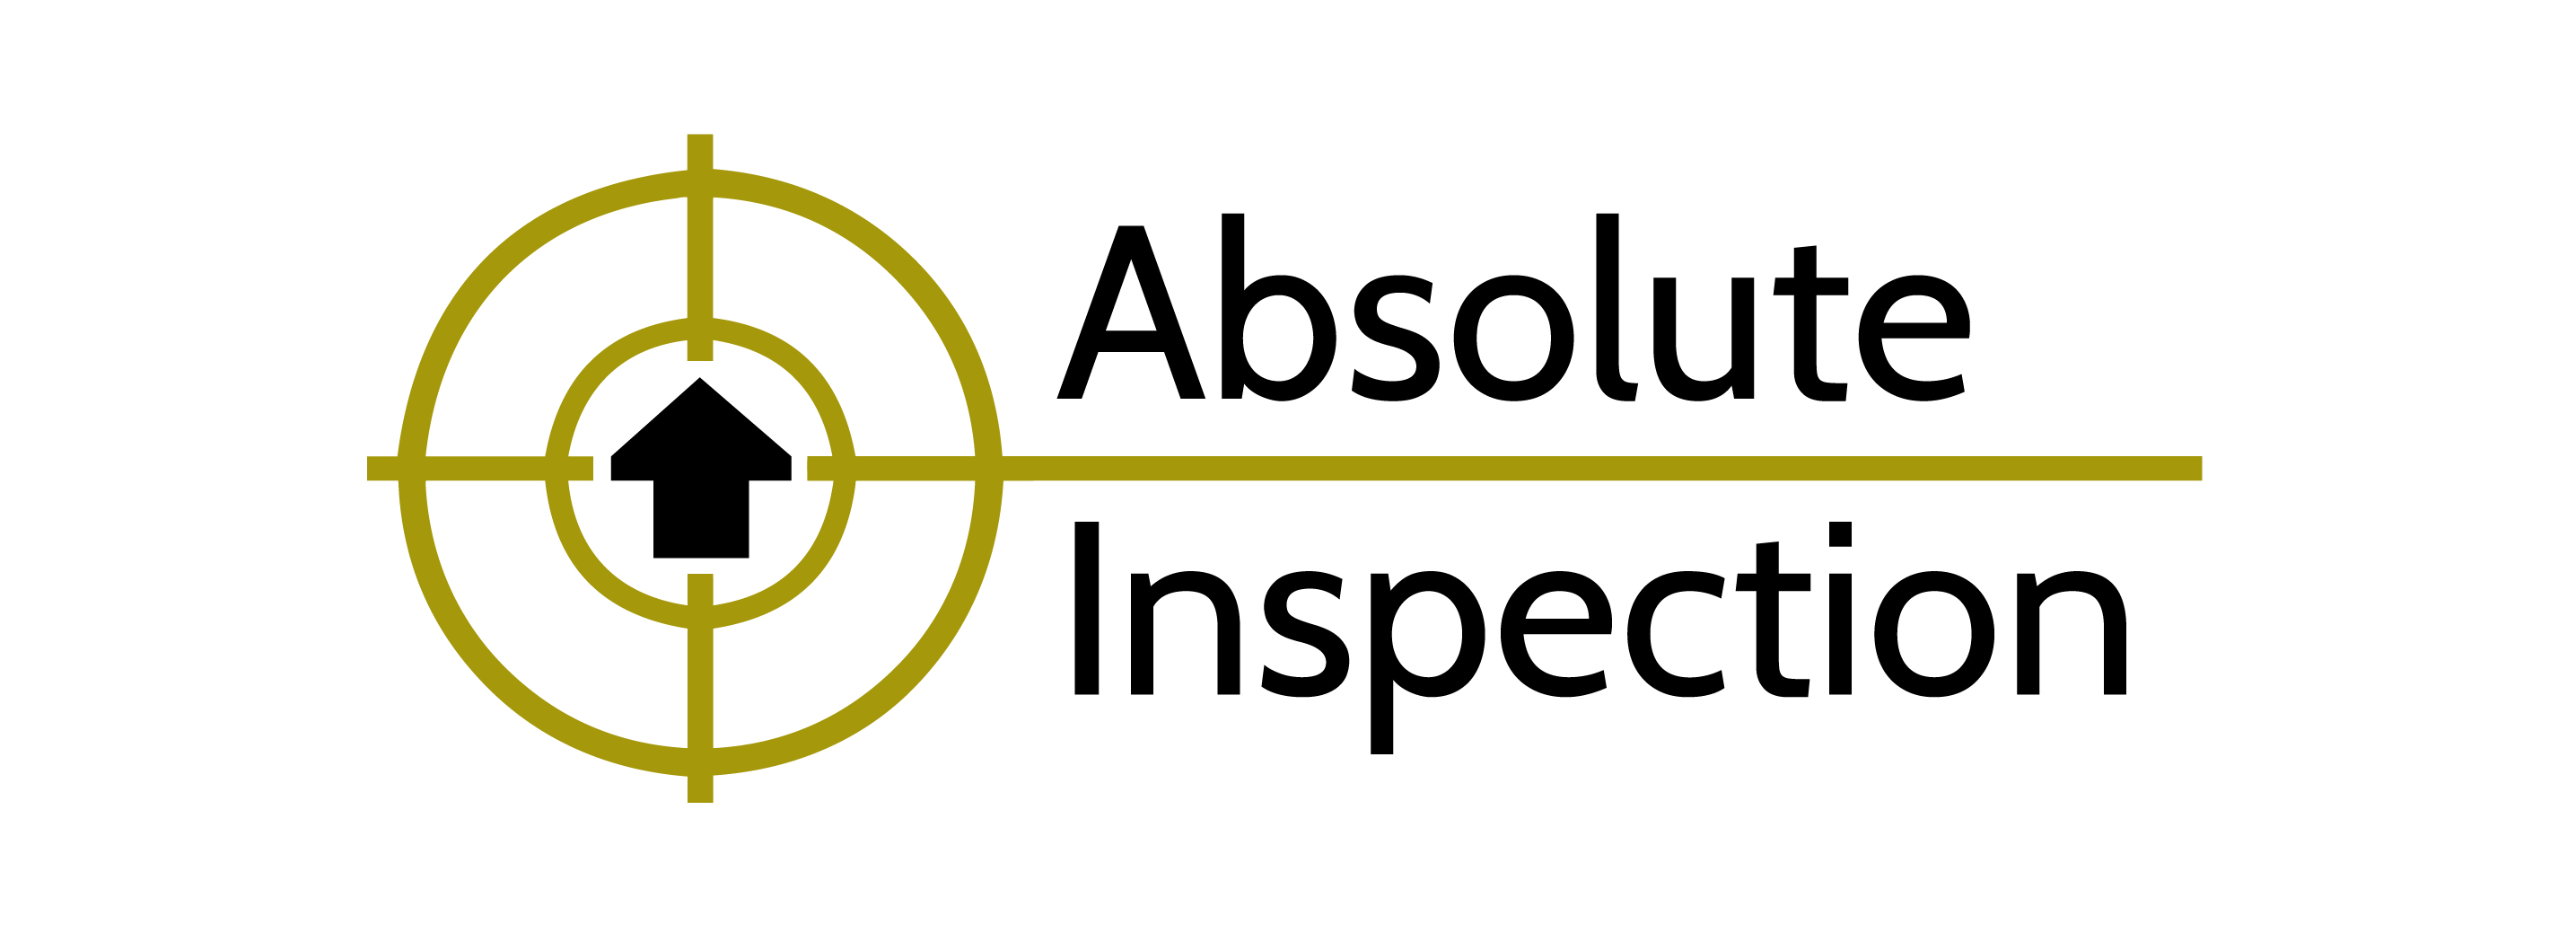 Absolute Inspection